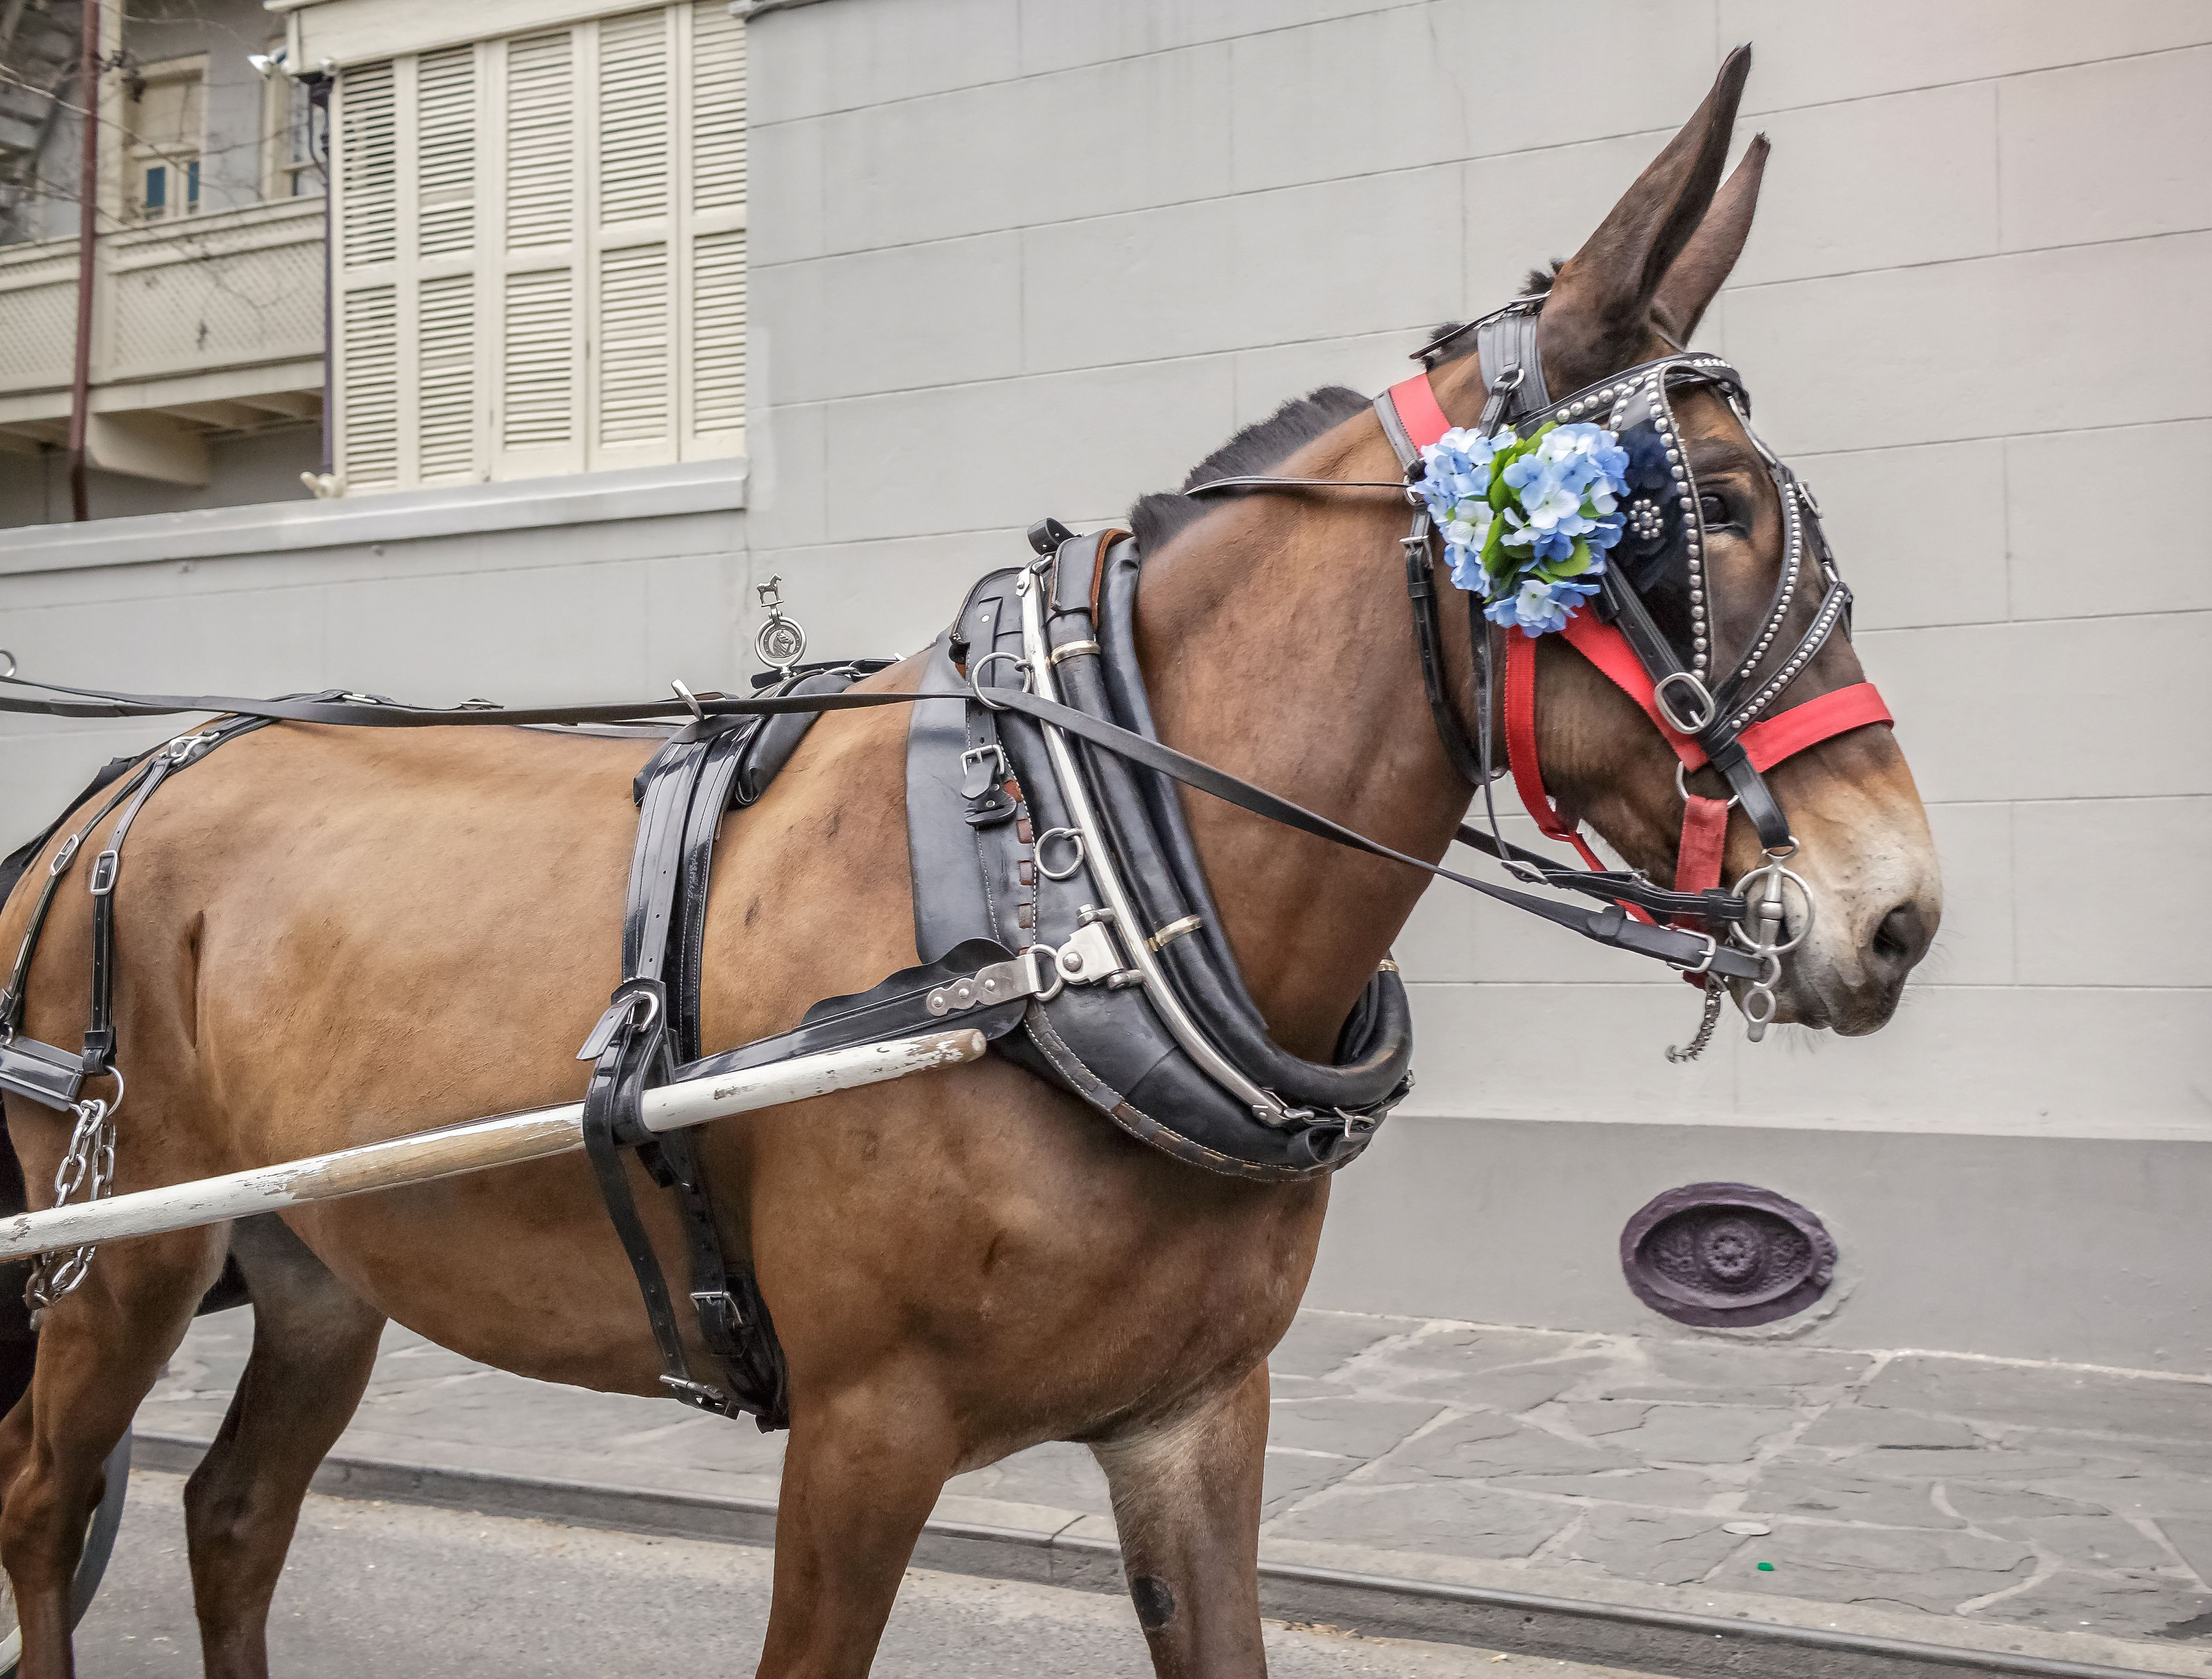 Horse pulling carriage in New Orleans